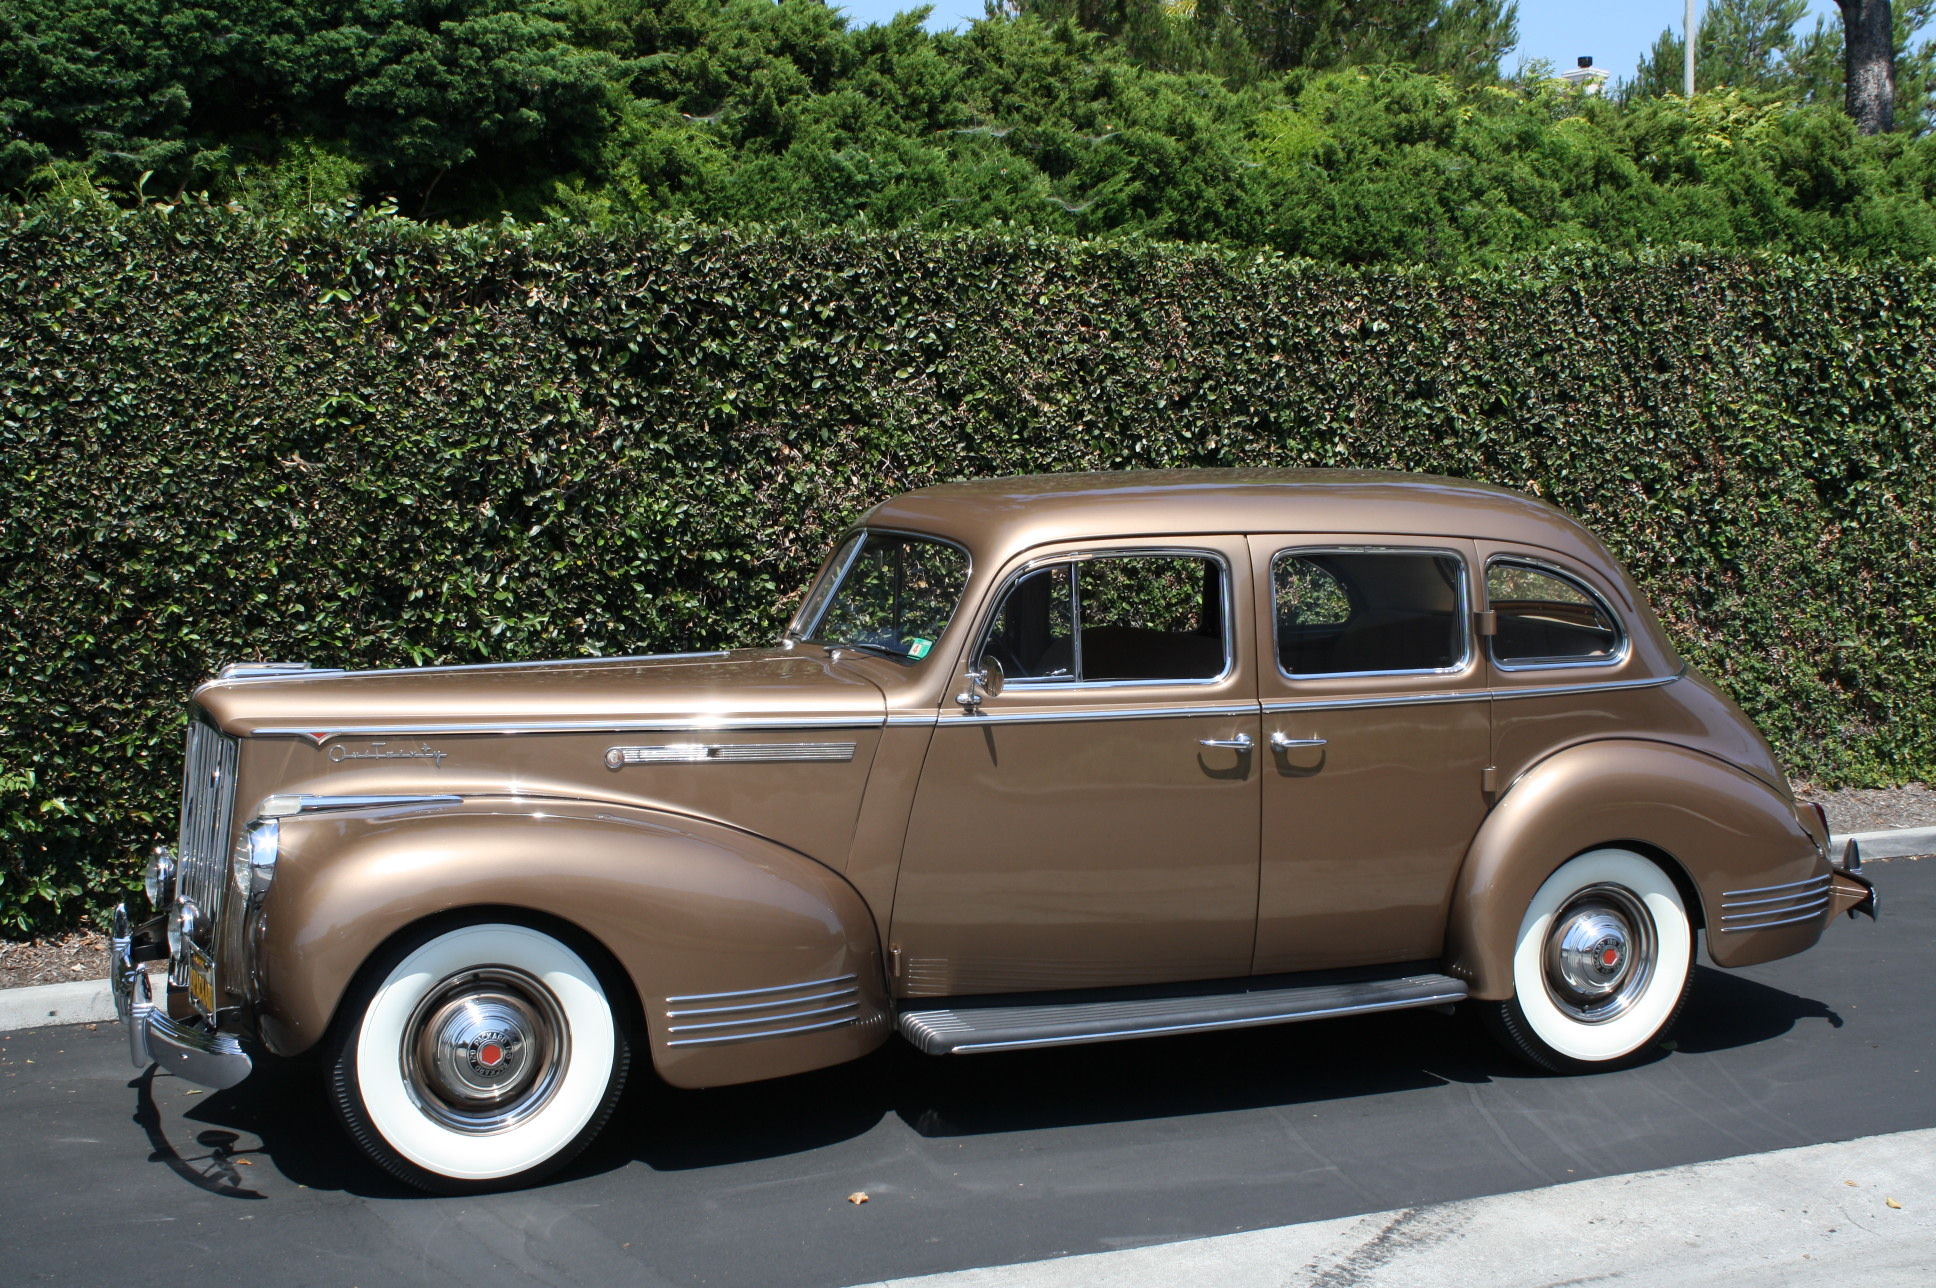 Car Paint Job Cost >> 1941 Packard 120 Sedan | The Vault Classic Cars